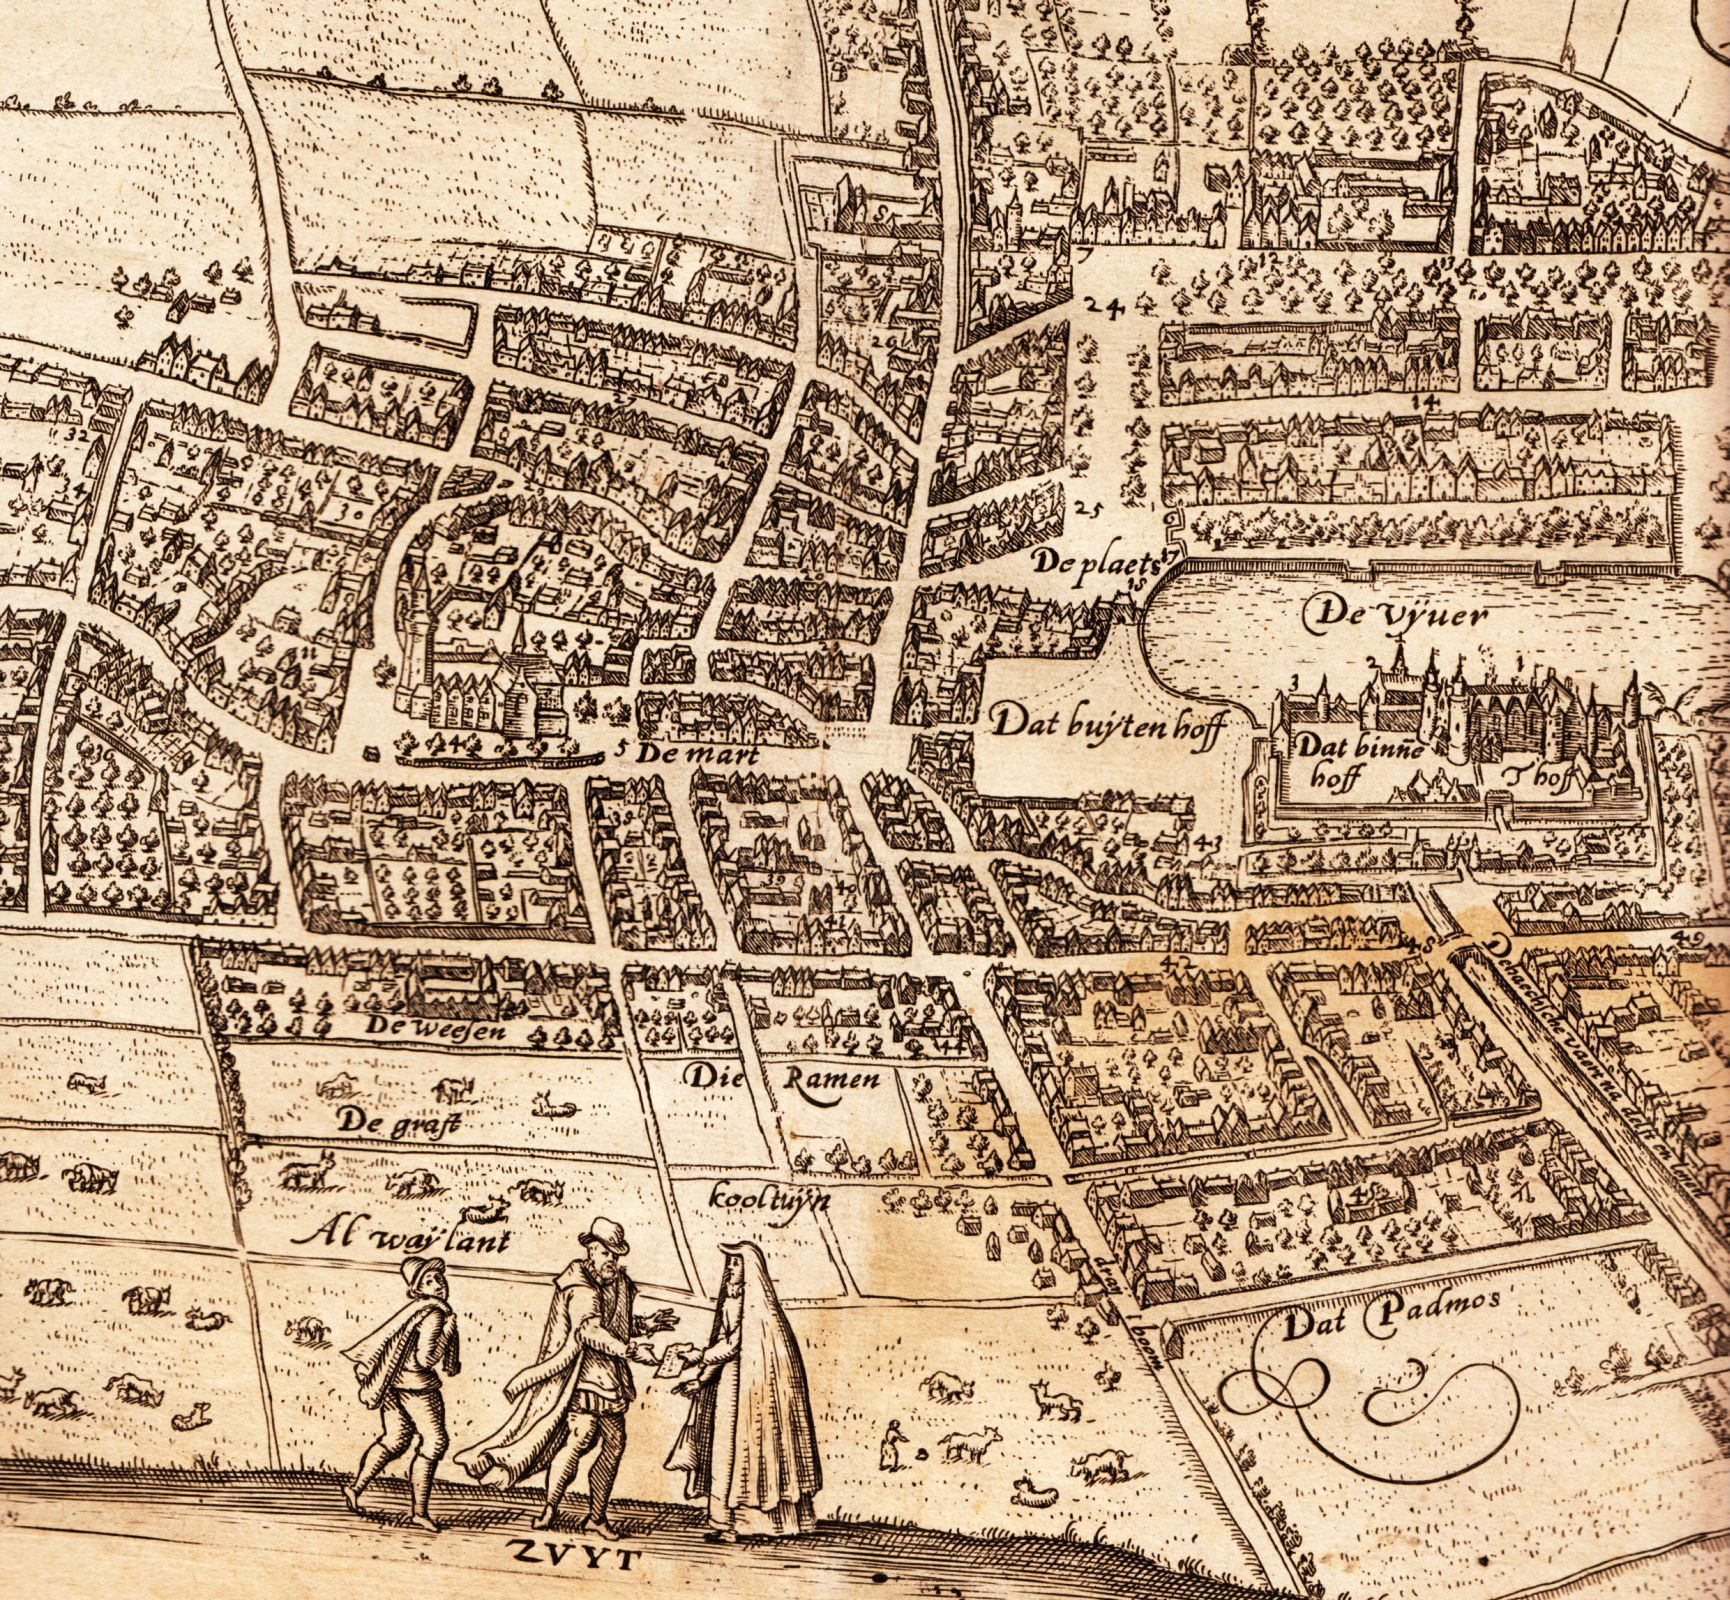 Old map The Hague Holland Old Maps and Explorers Pinterest